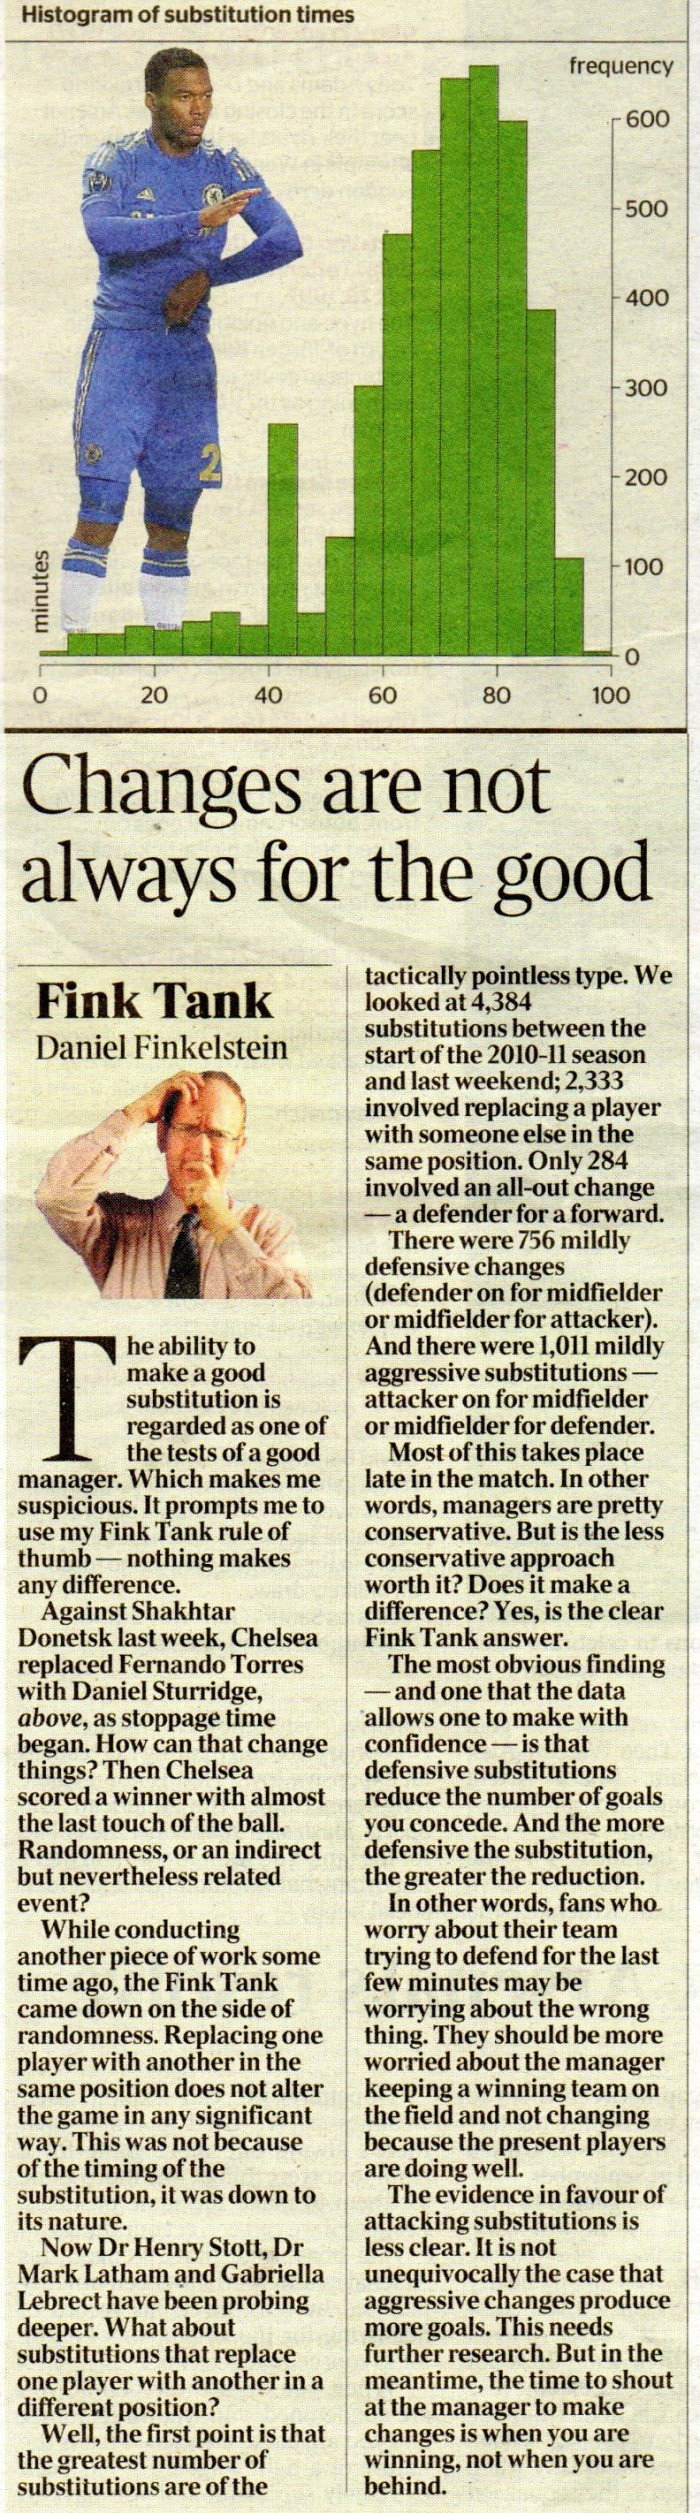 fink tank on subs 17Nov2012